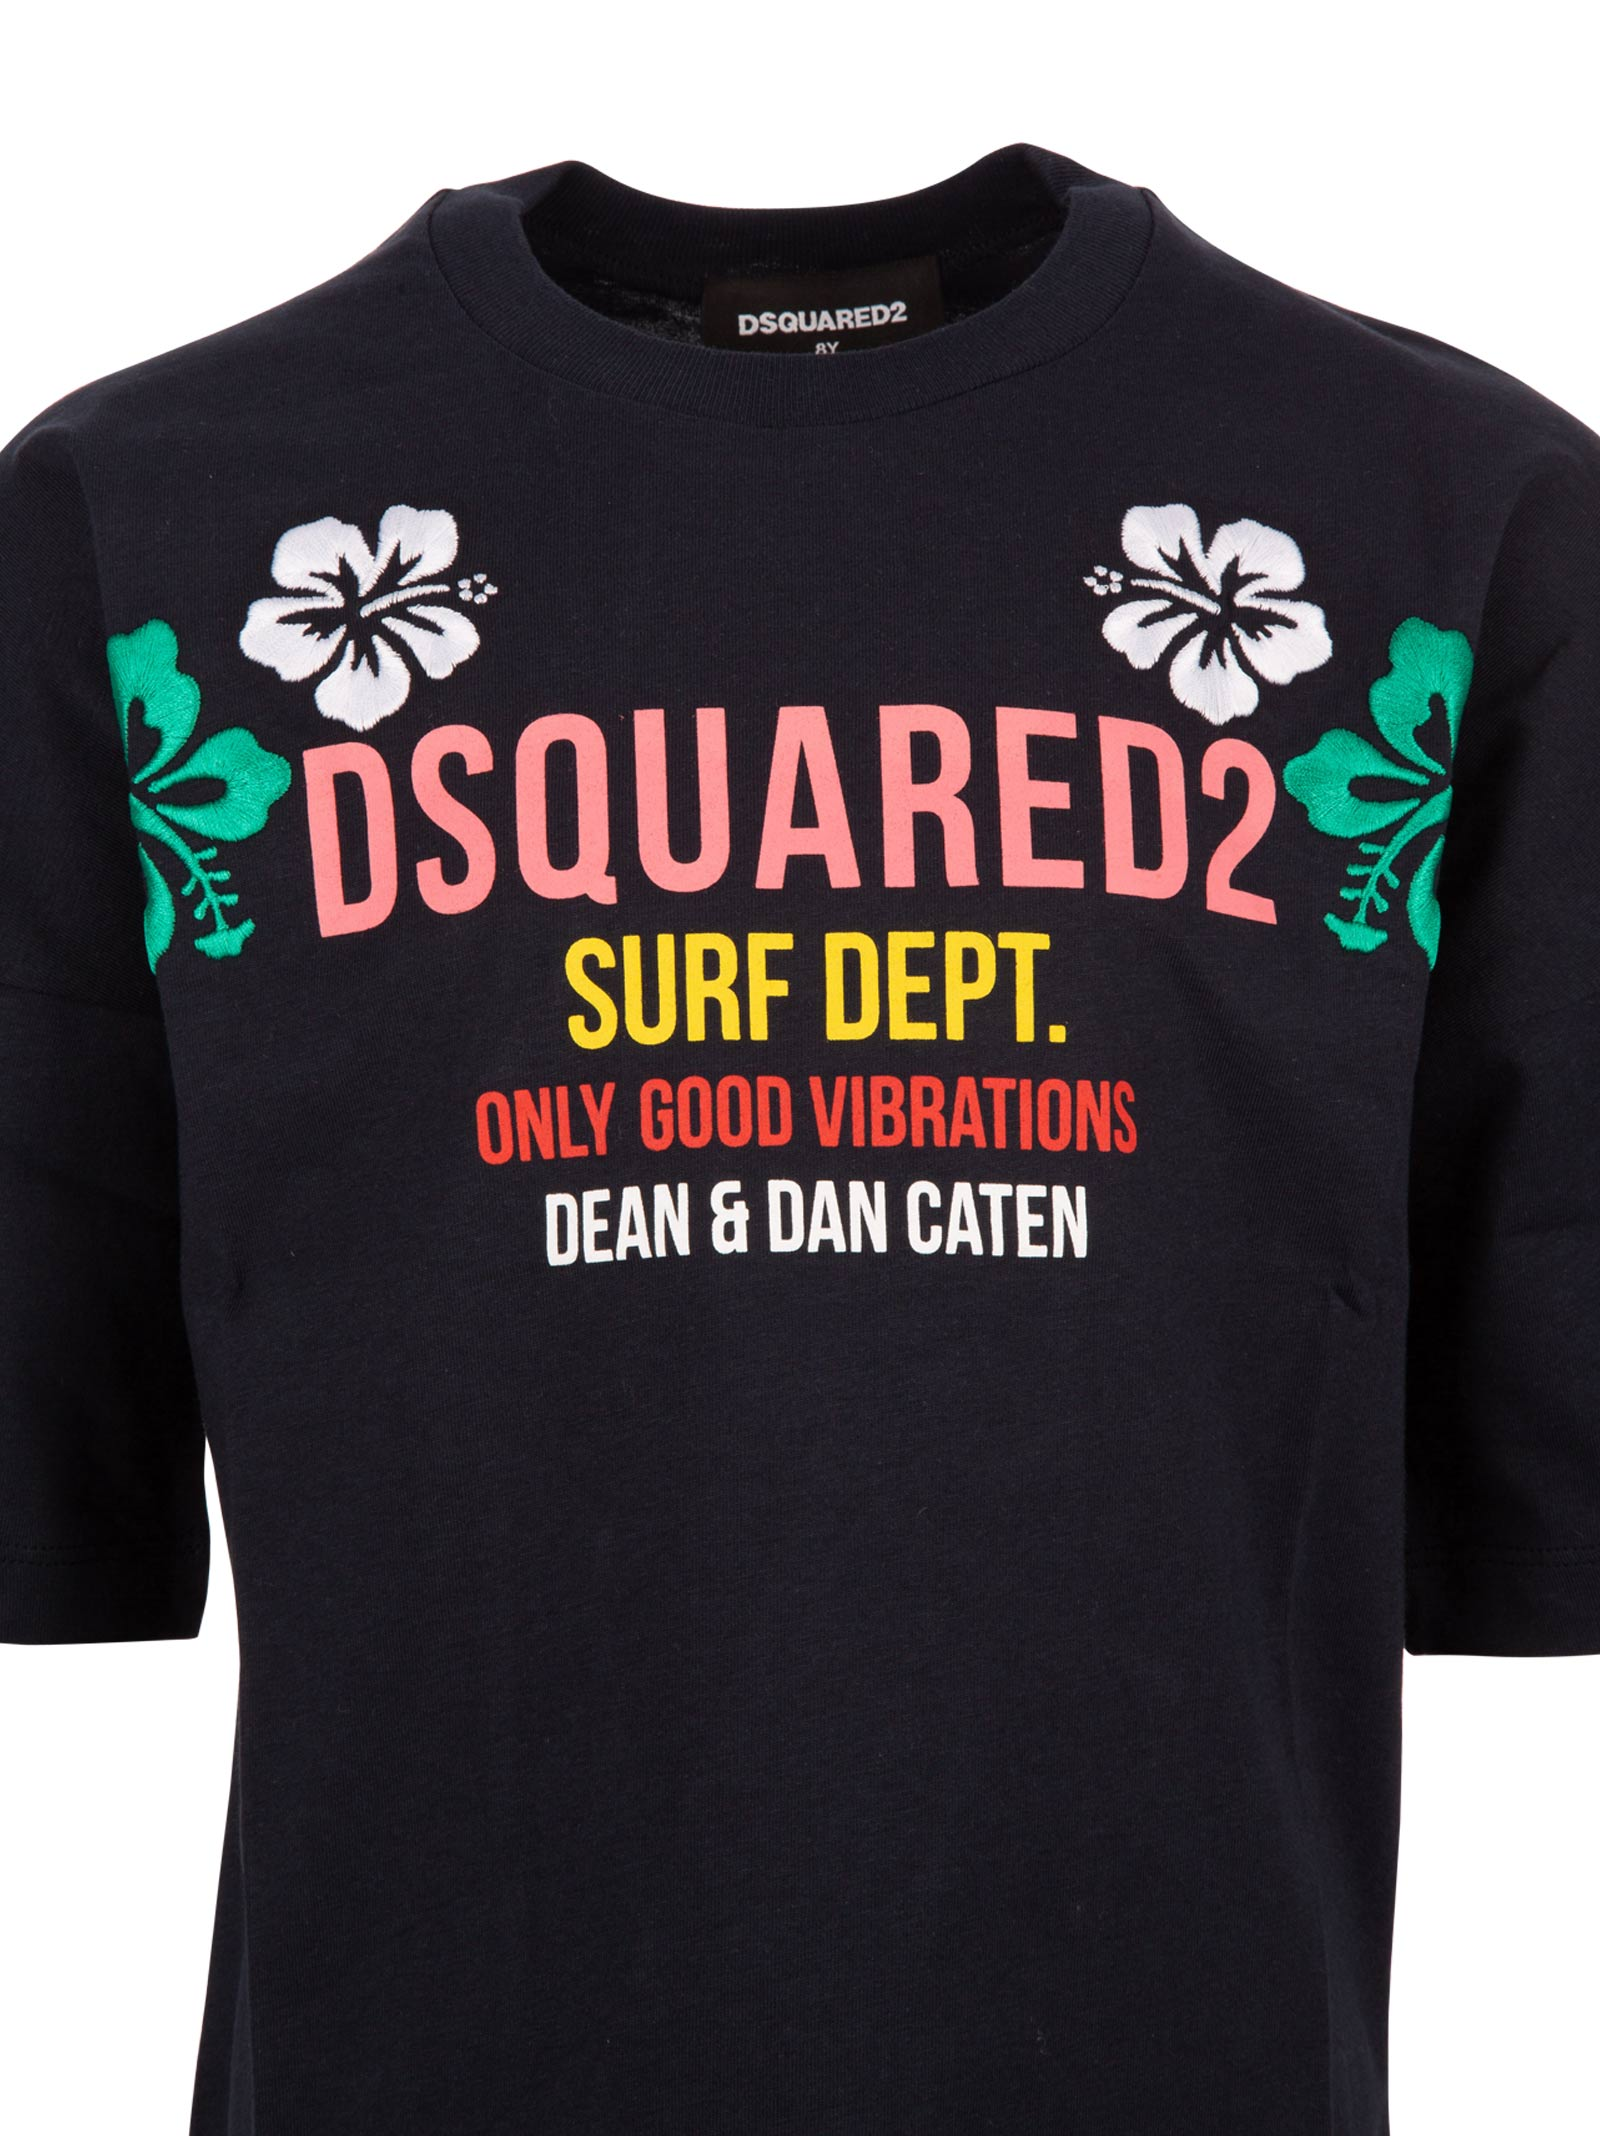 6323c889 Dsquared2 Junior t-shirt - Dsquared2 Junior - Michele Franzese Moda